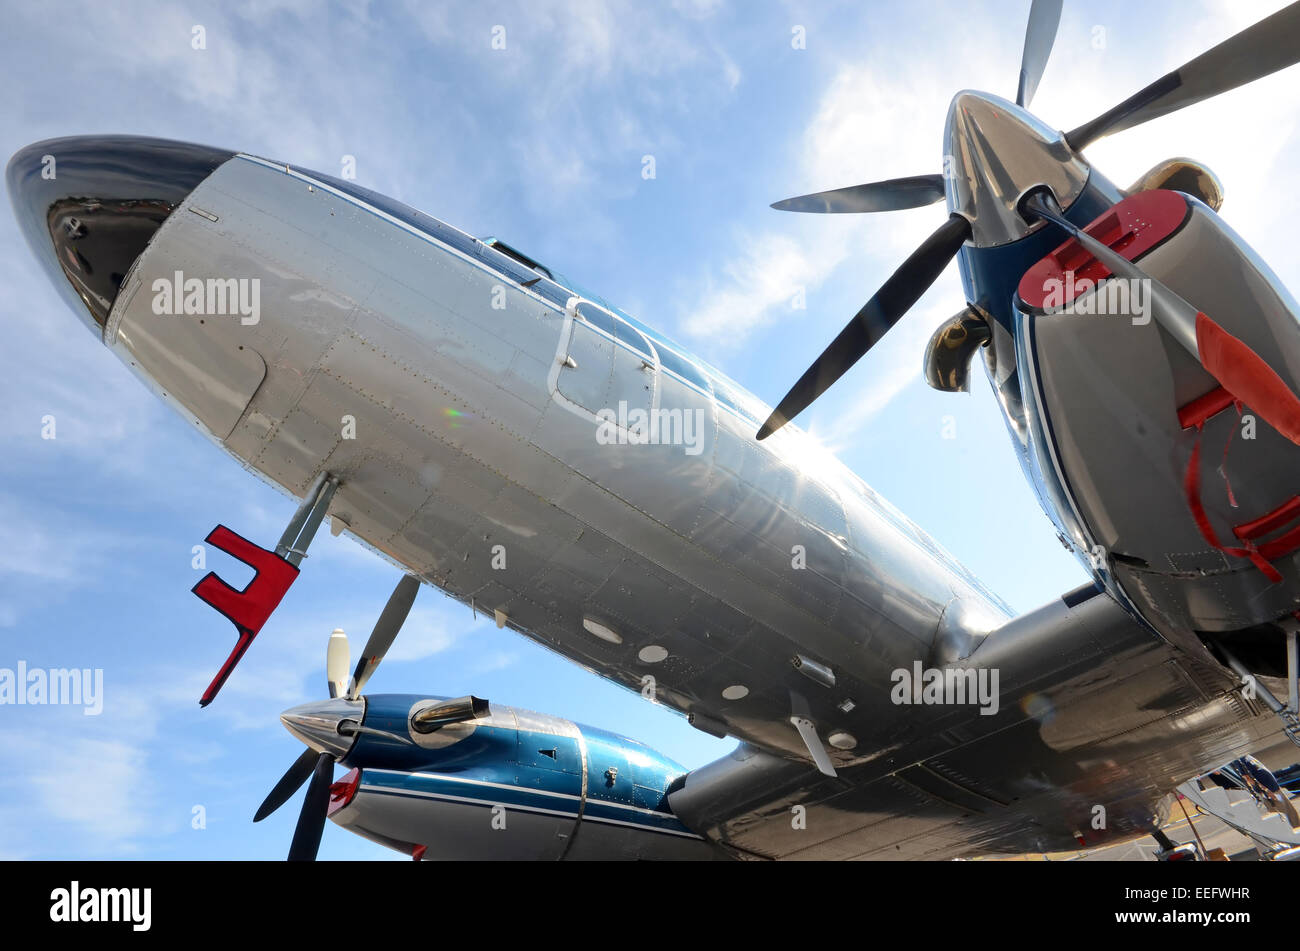 Old turboprop airplane seen from below - Stock Image